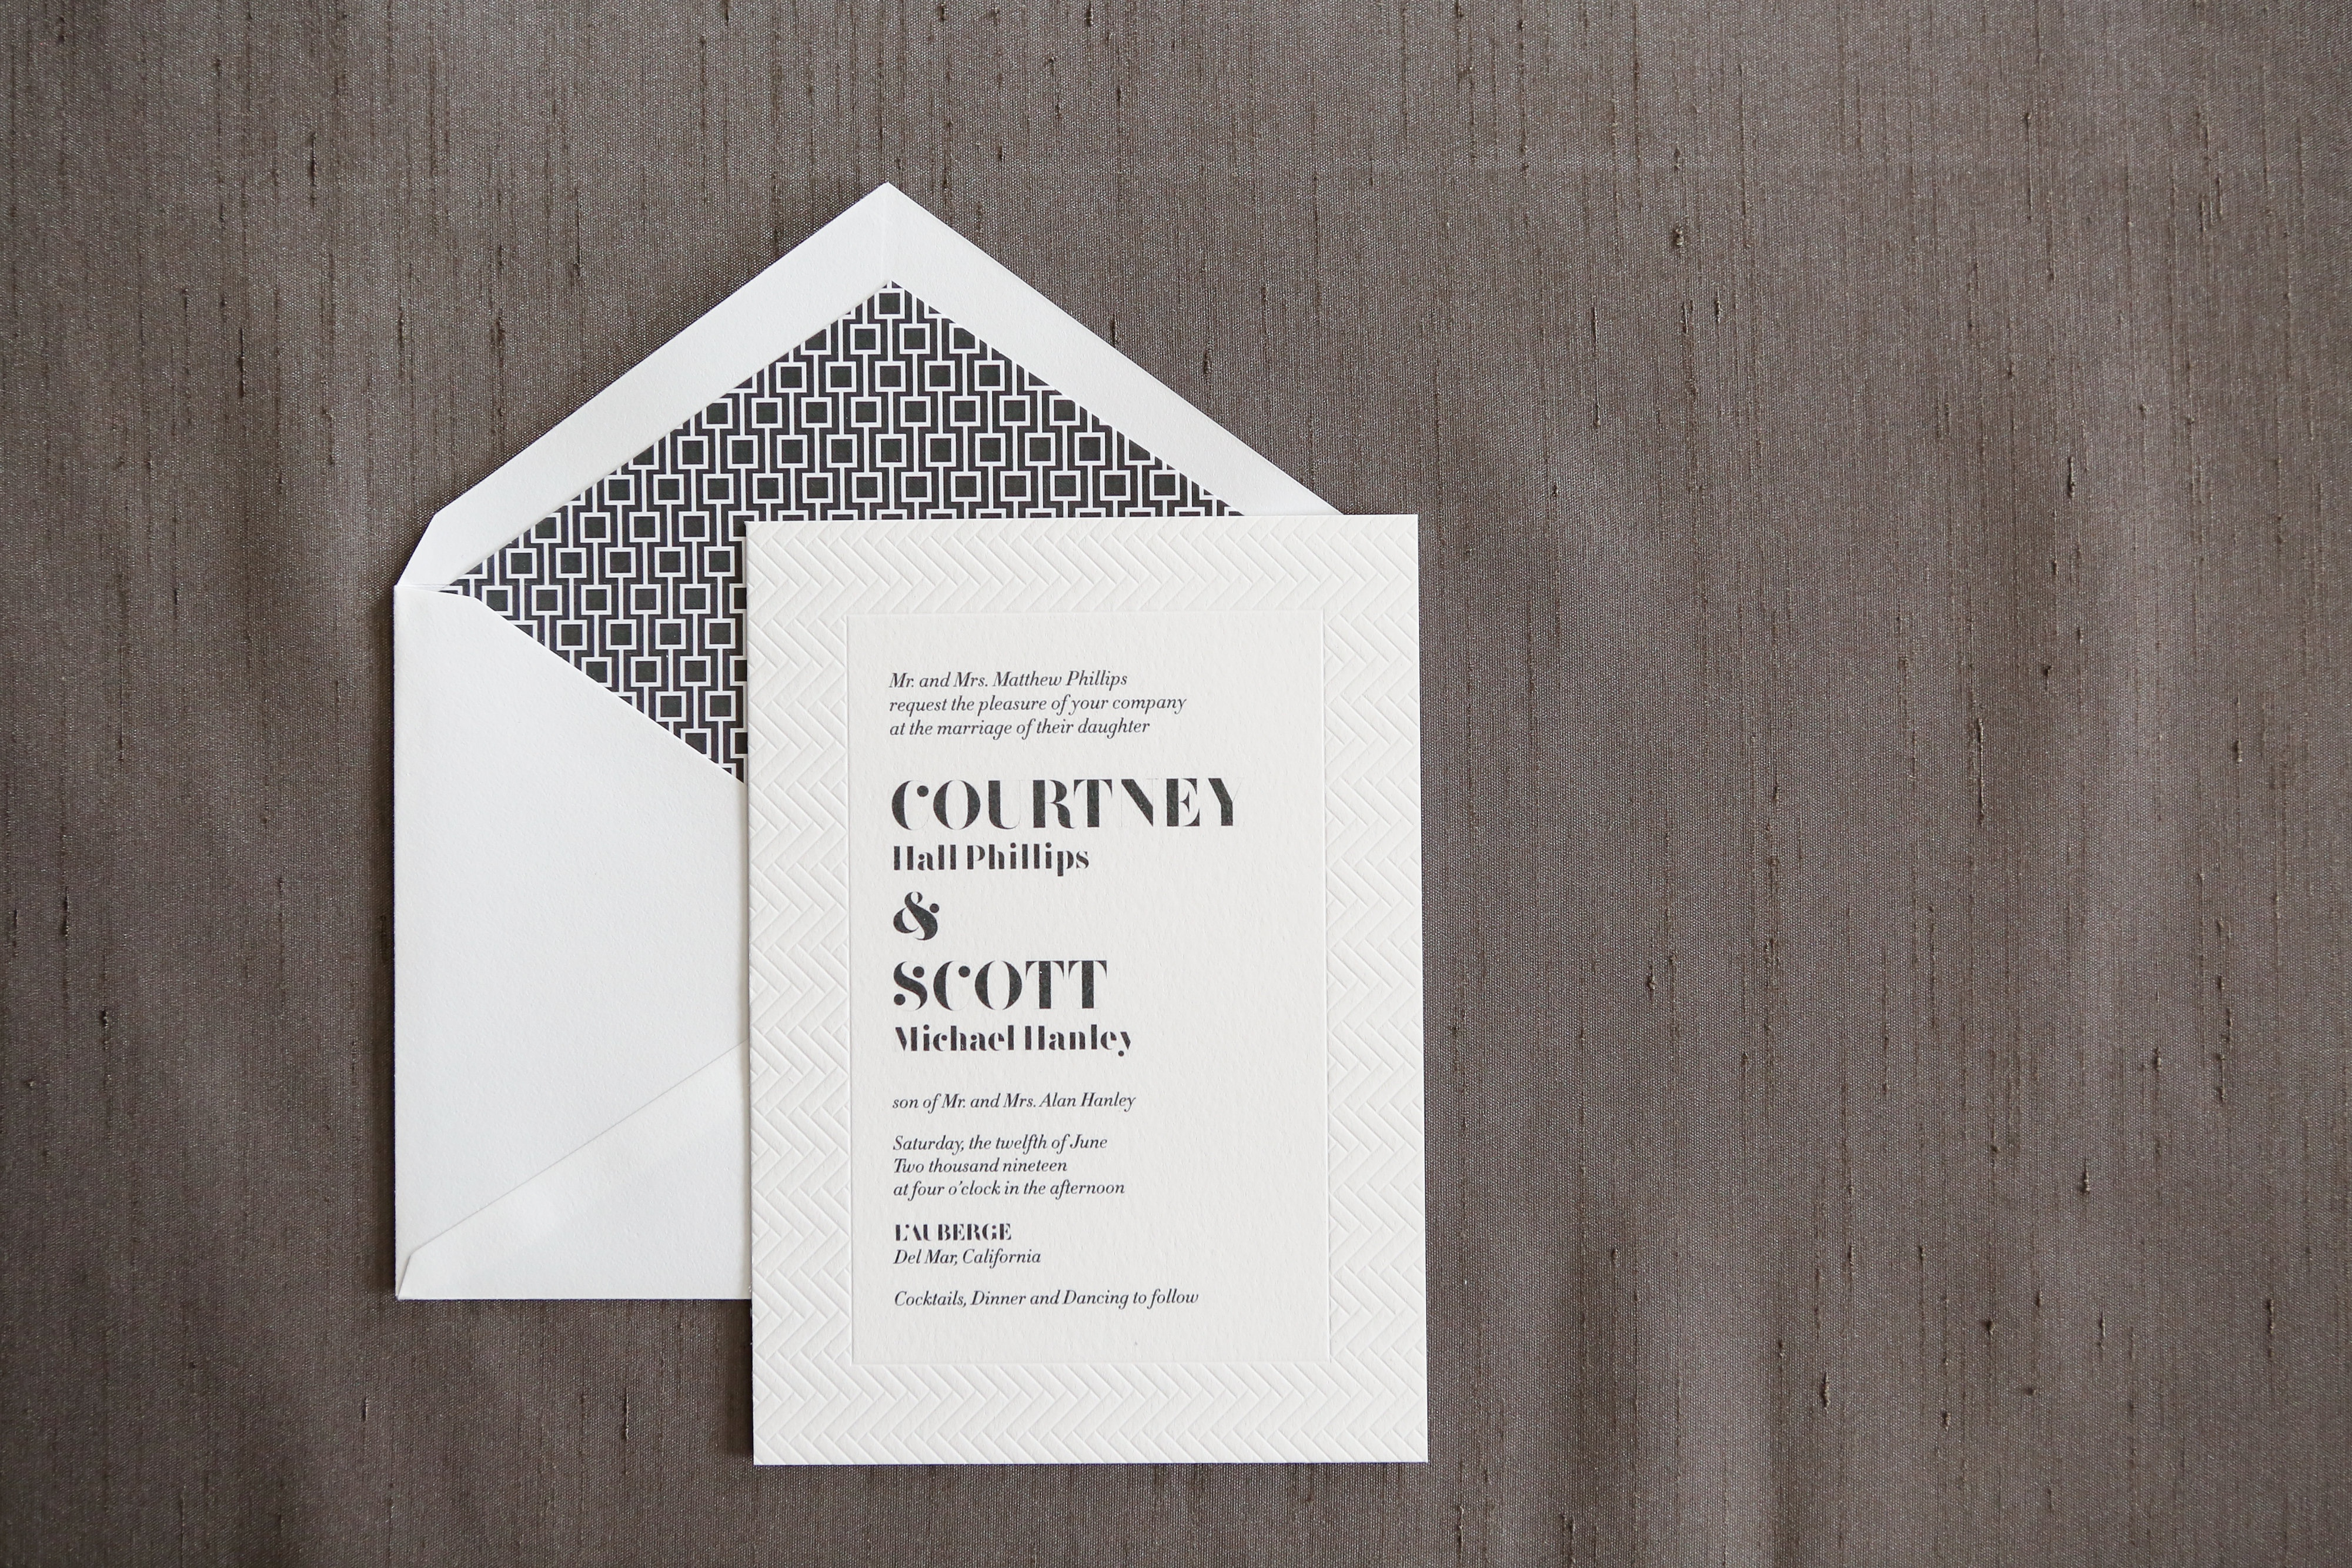 The Alinea Wedding Invitation Suite available at Staccato features 1 color thermography with blind impression border, bold text, and a geometric envelope liner.  Contemporary yet formal, this invitation makes a bold statement.